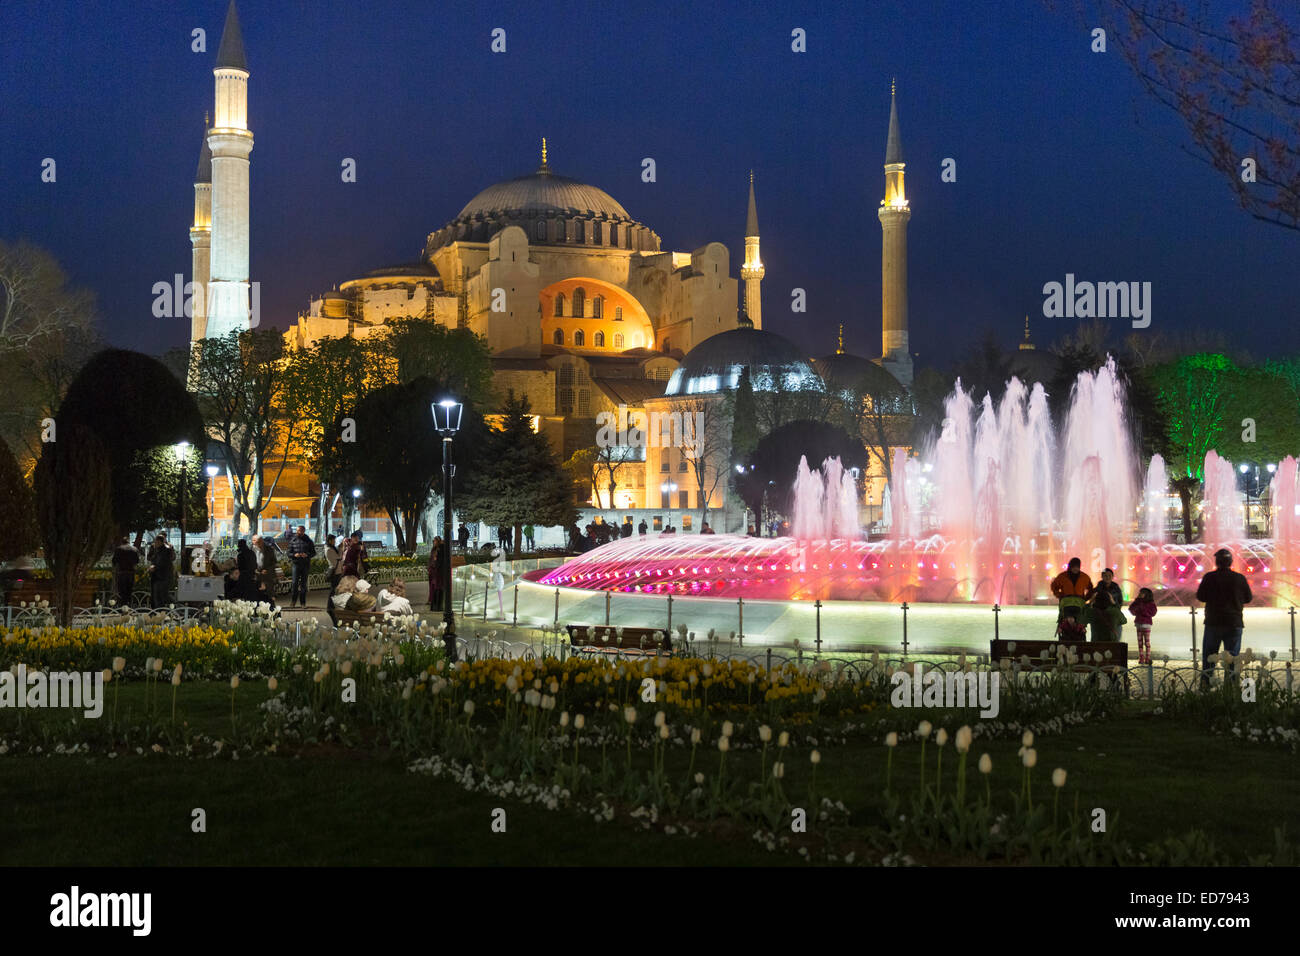 Hagia Sophia Muslim mosque museum and Atmeydani Hippodrome fountain floodlit at night, Istanbul, Turkey - Stock Image